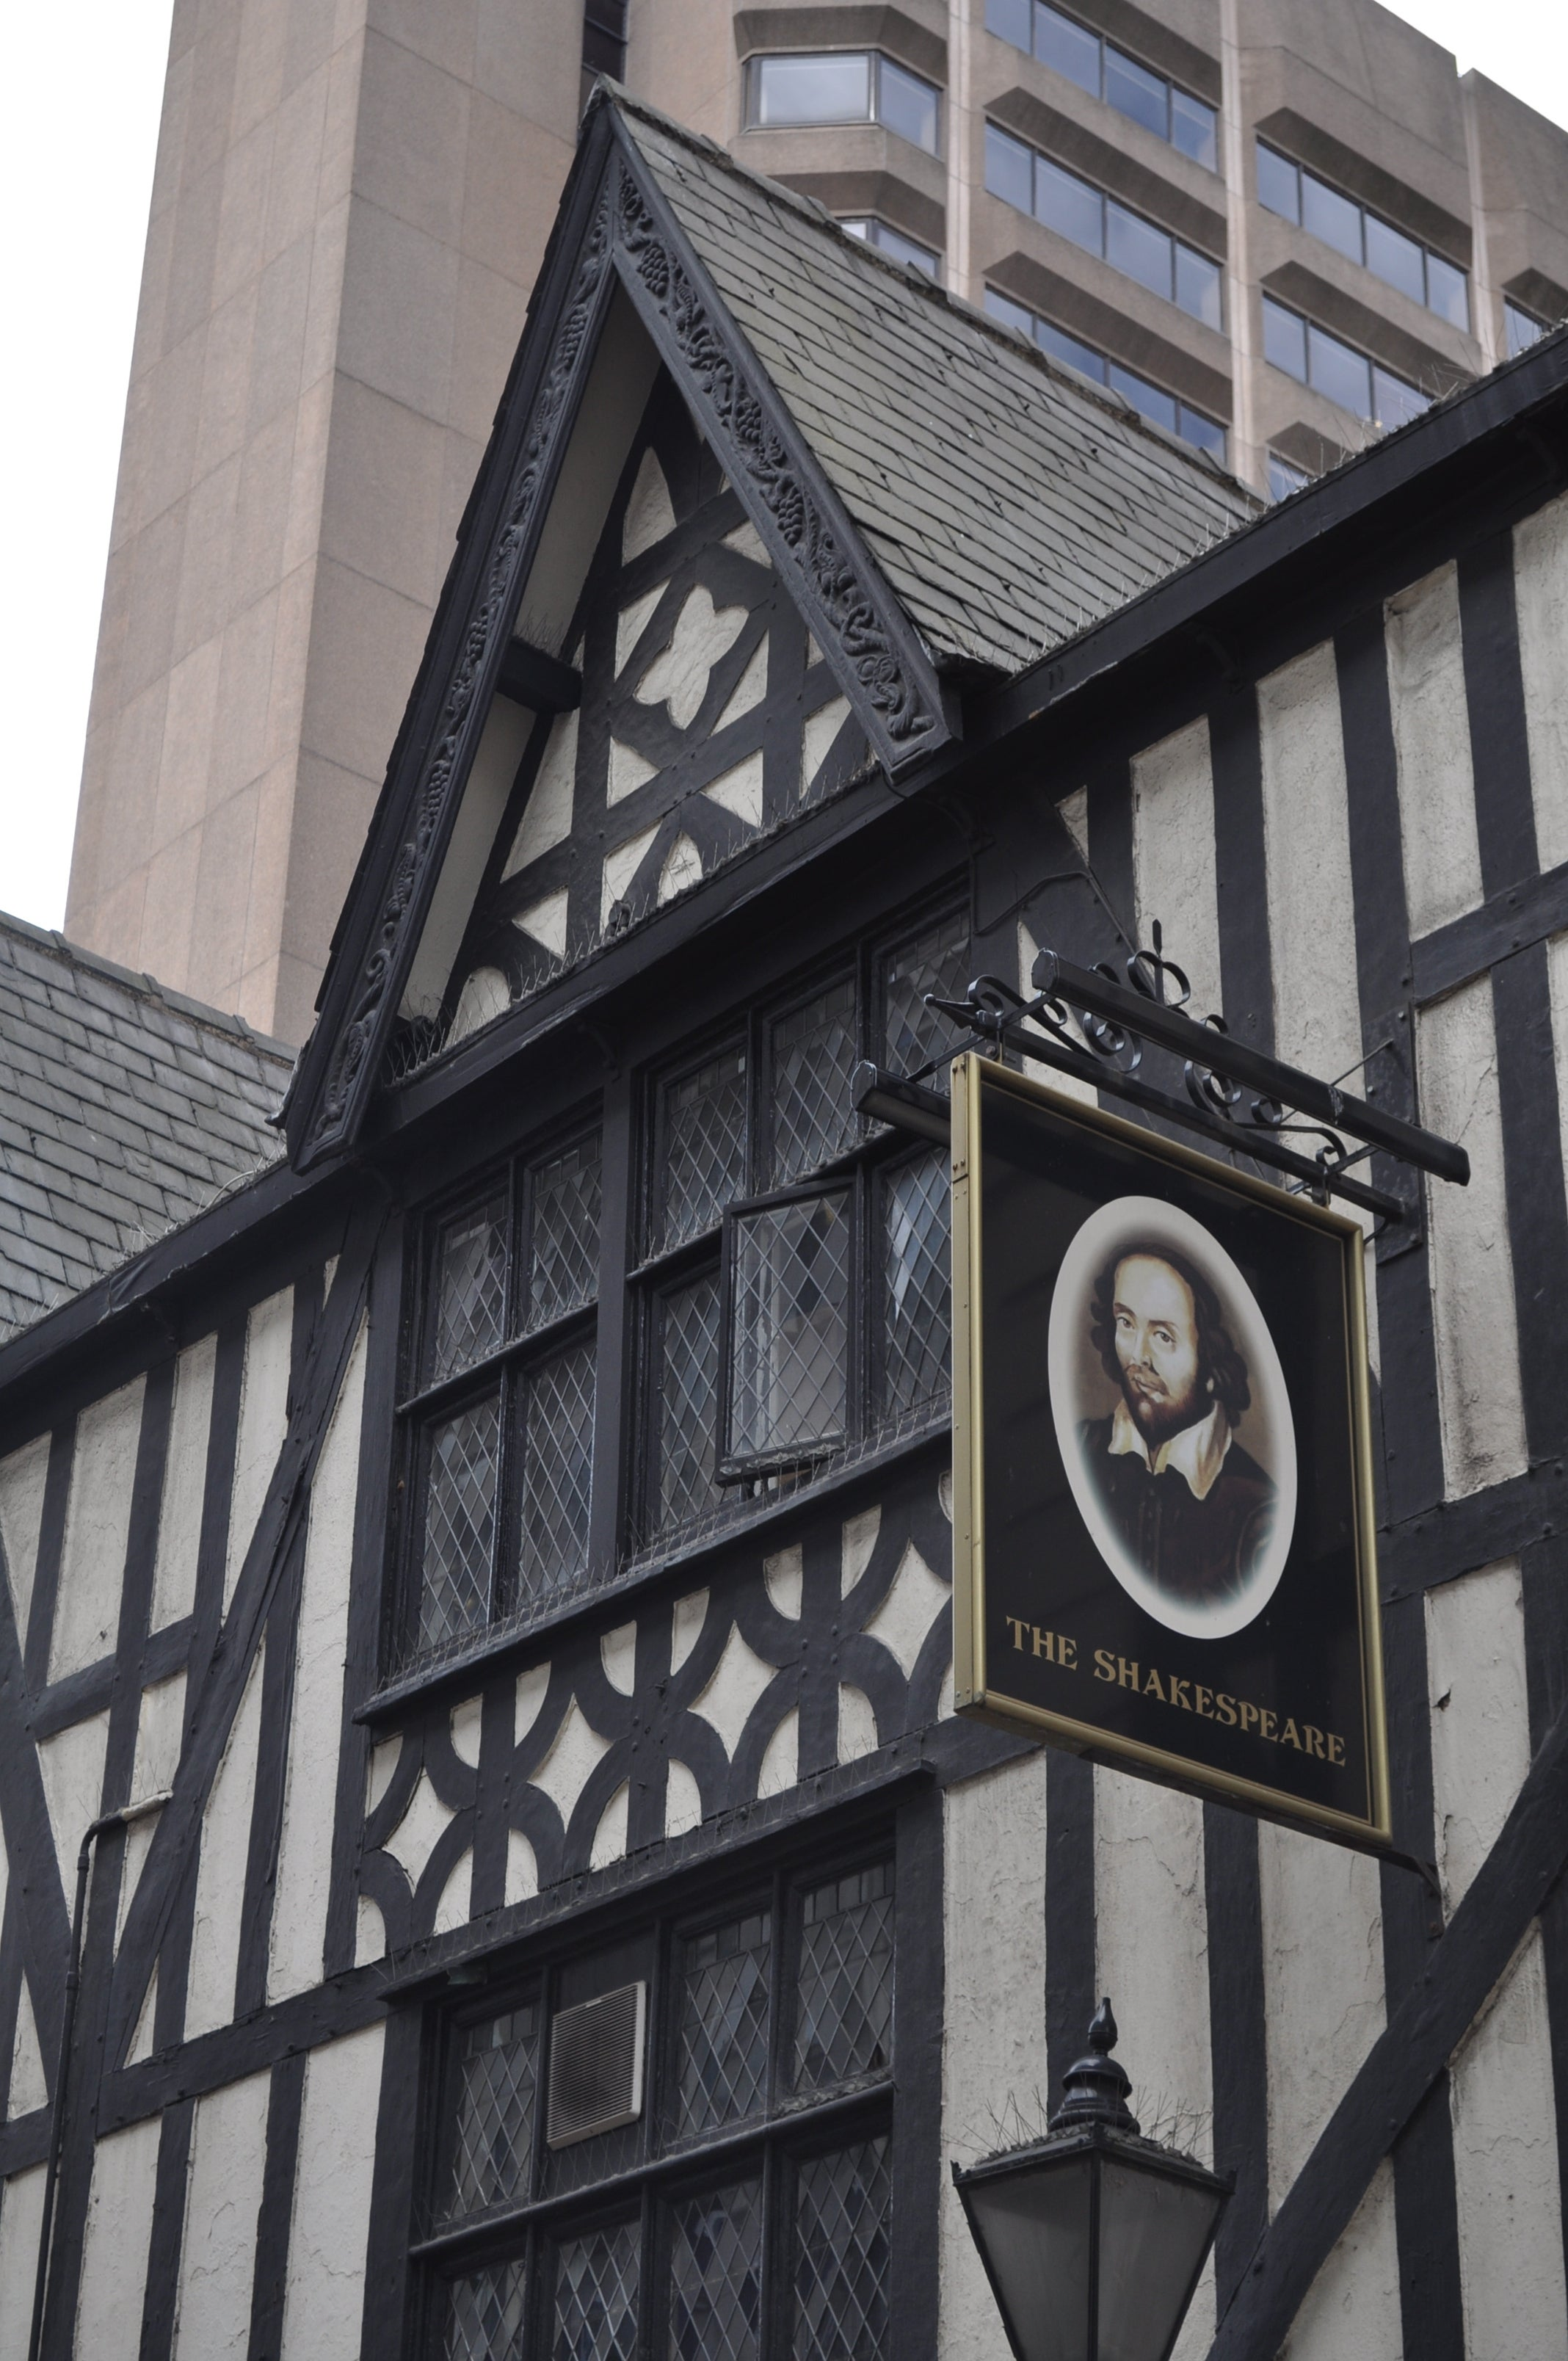 The Shakespeare Public House